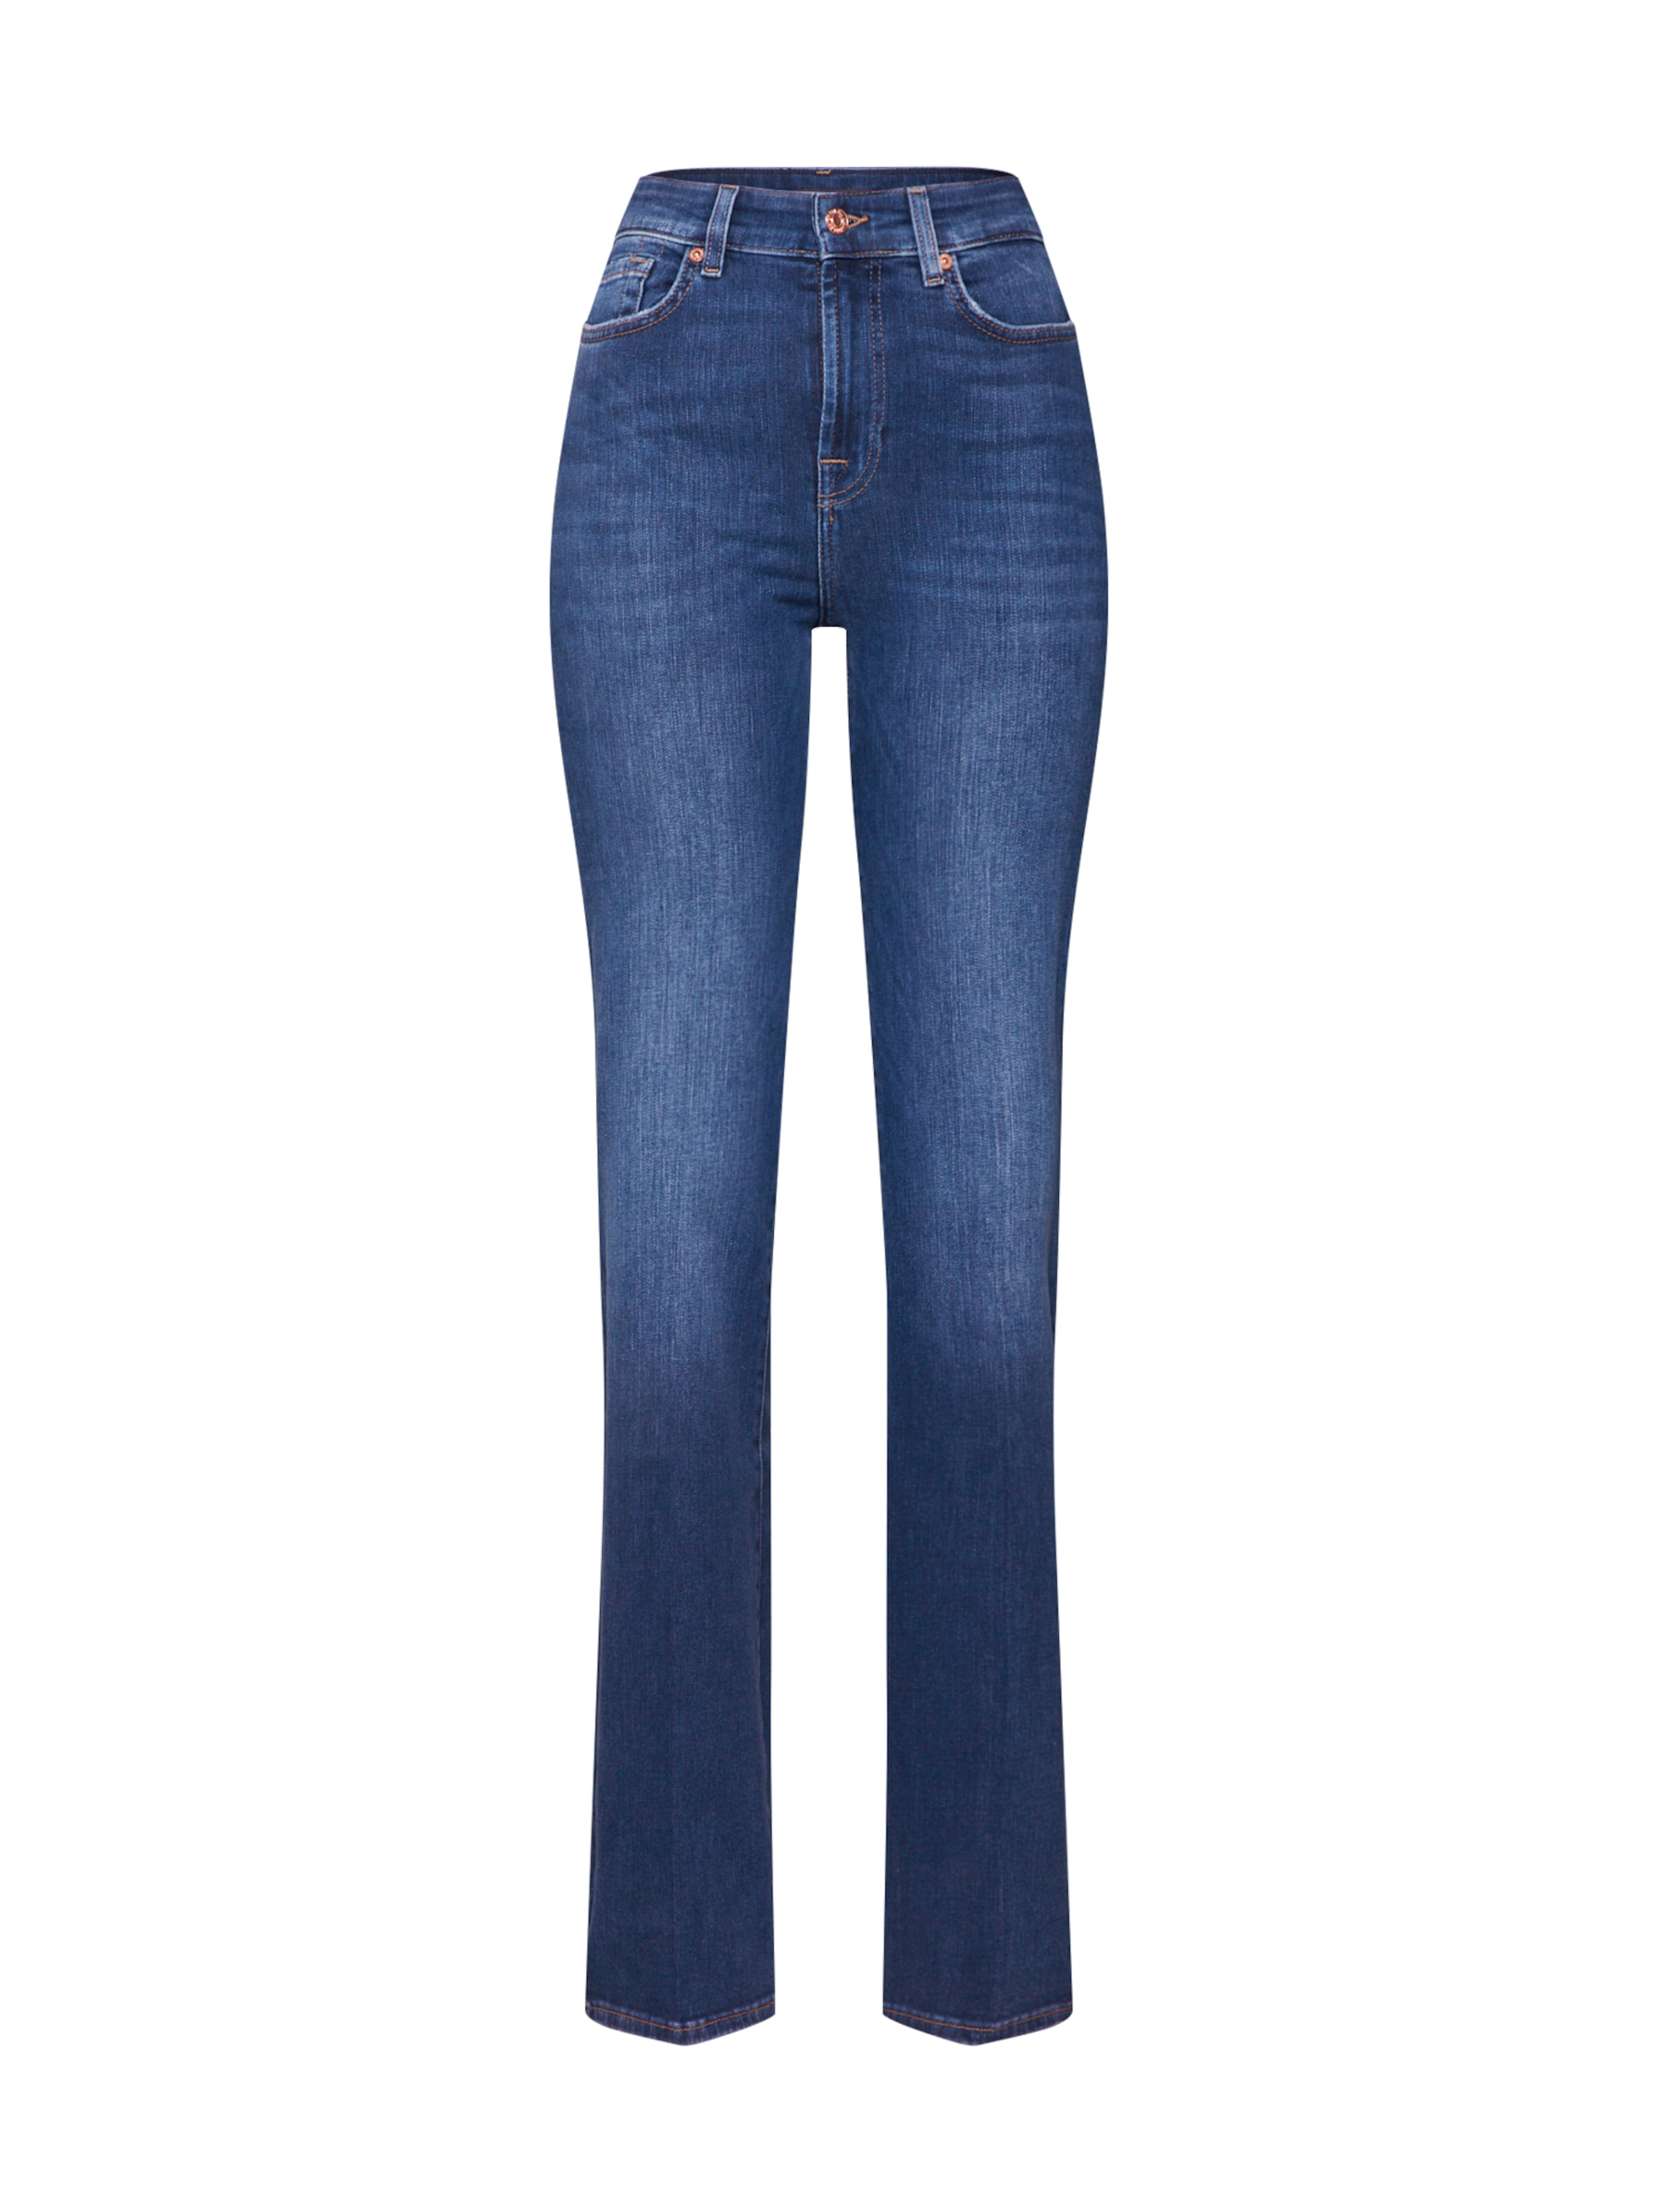 Mankind 'lisha' In Blue 7 For All Jeans Denim CodBrxeW